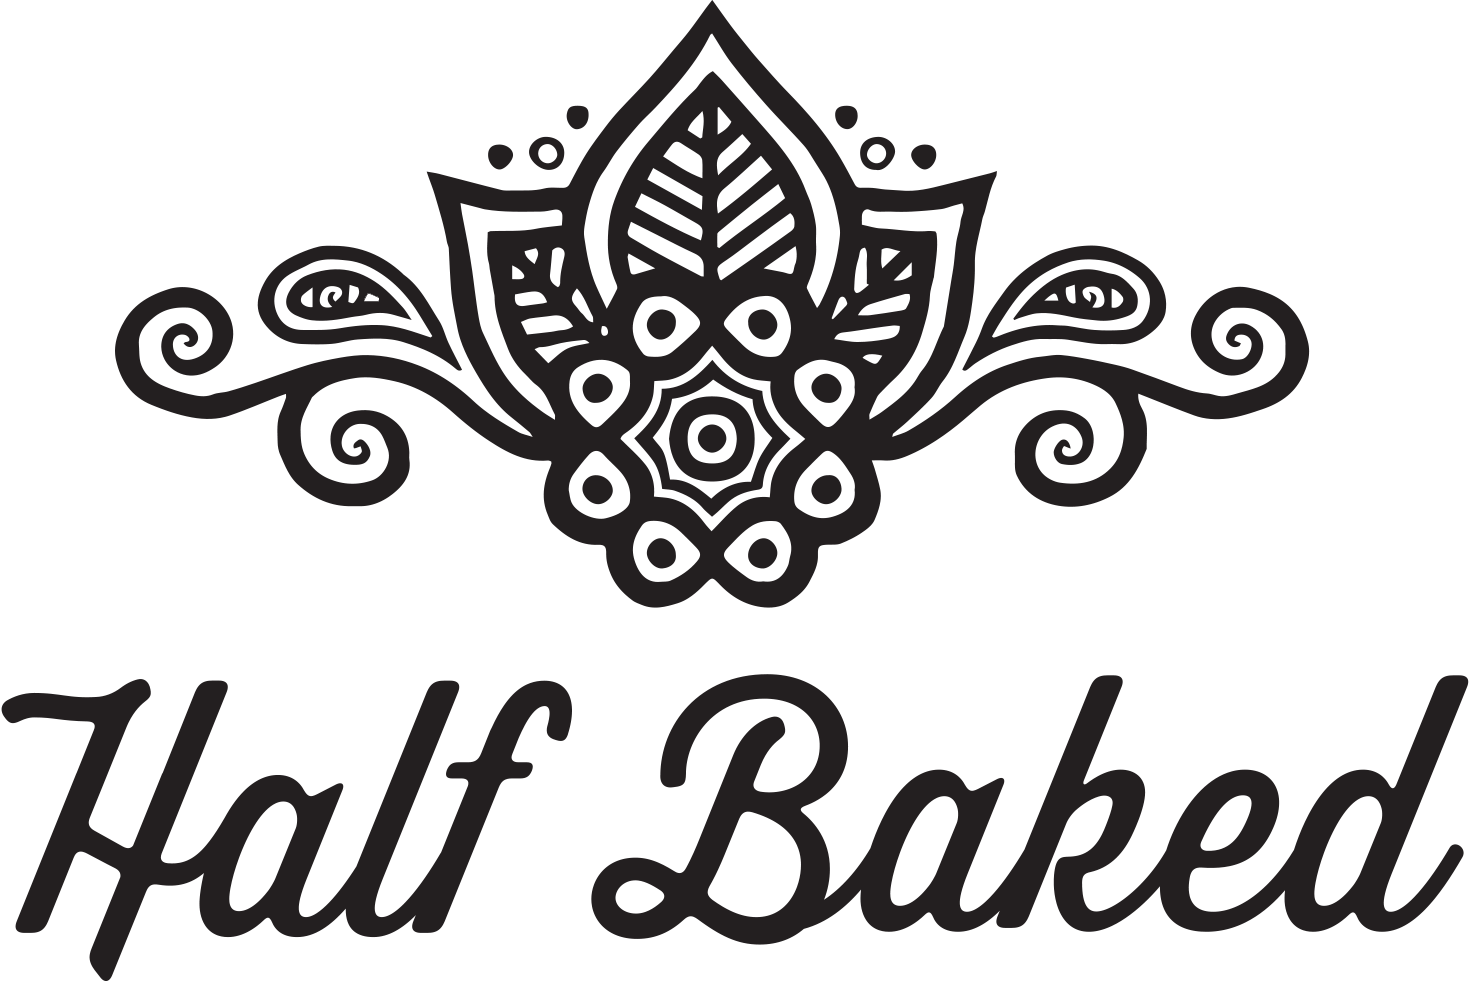 HALF BAKED CATERING CO.